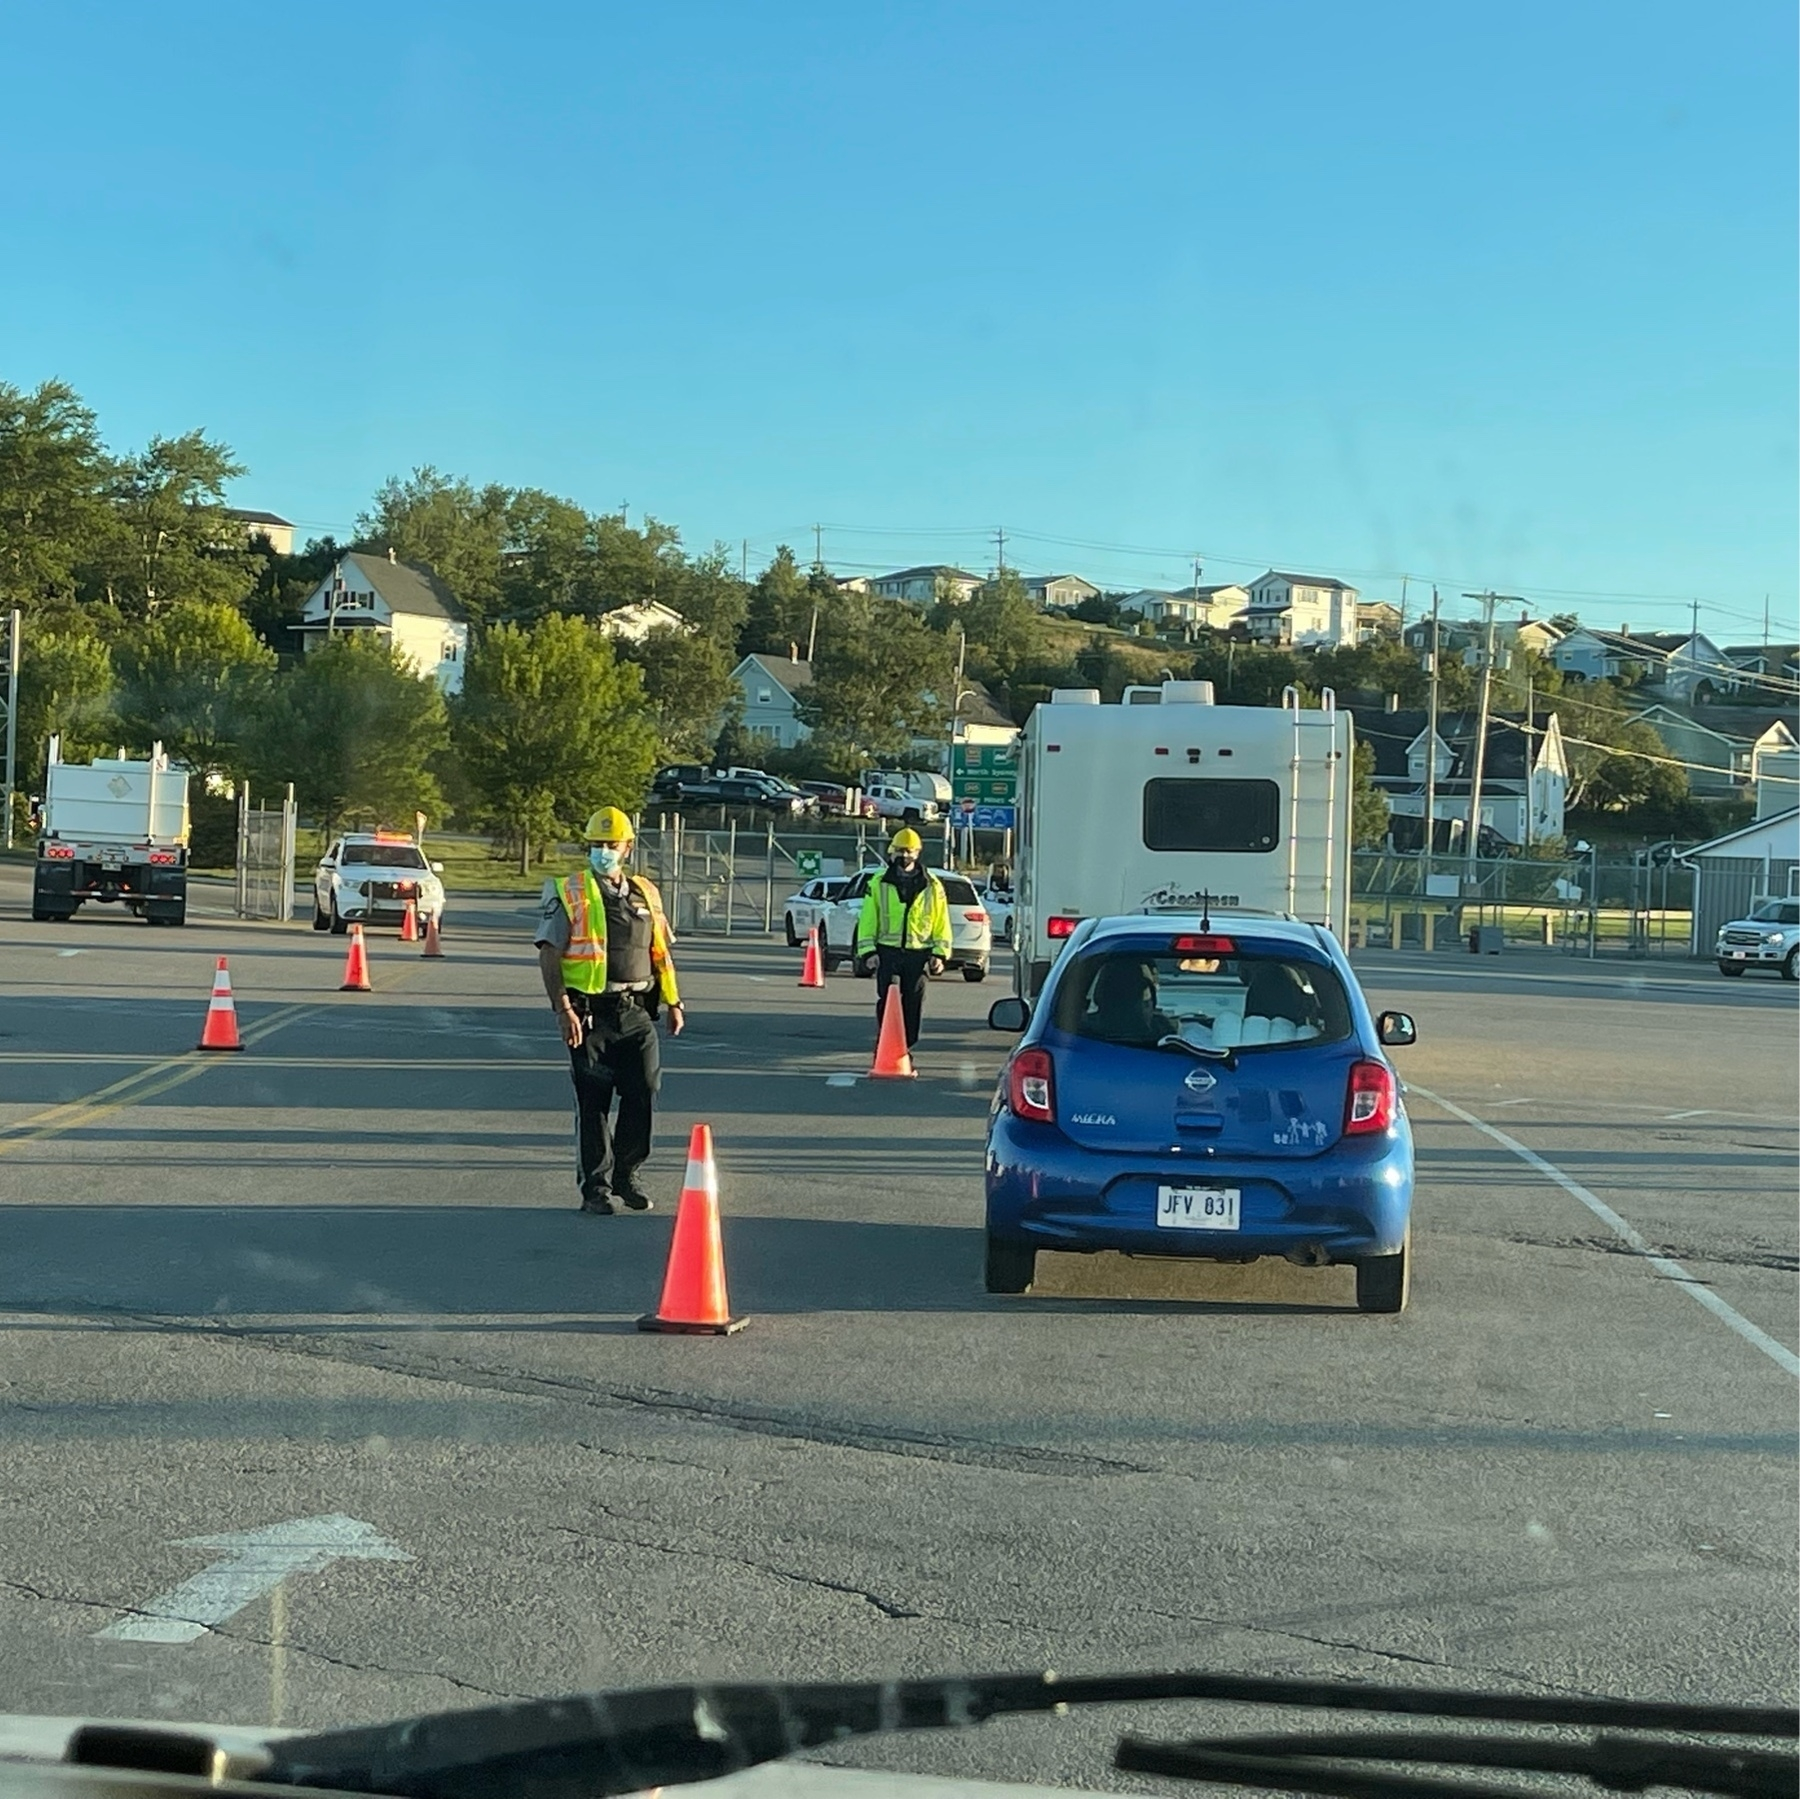 vehicles approaching two men in safety vests